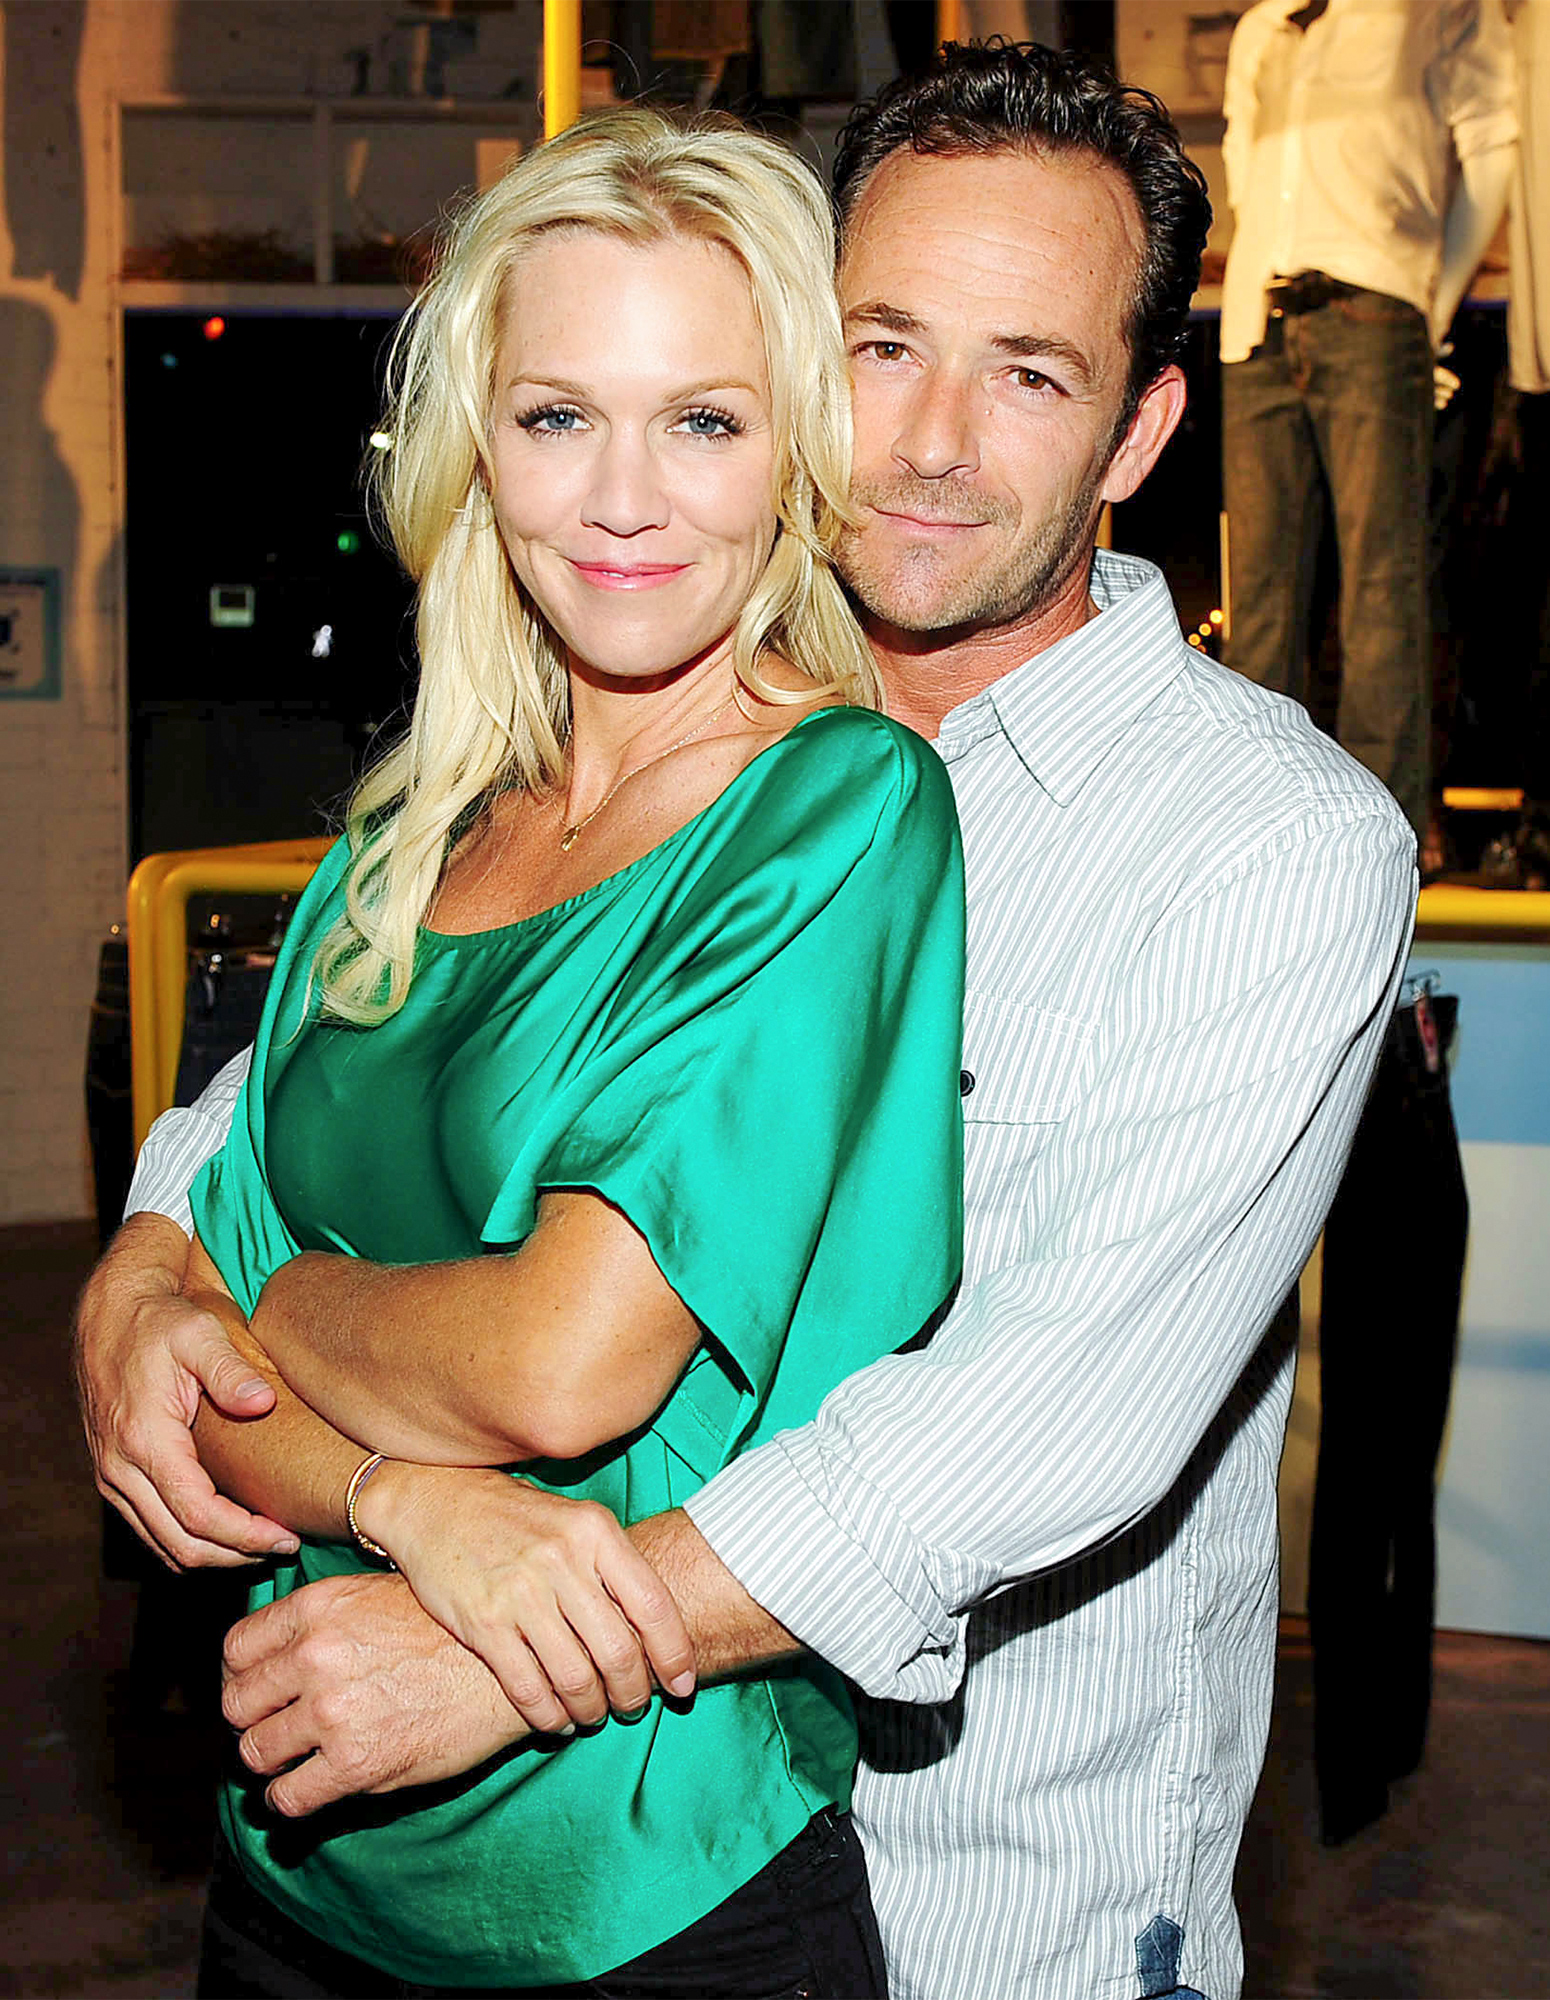 Jennie Garth And Luke Perry At The Old Navy Bluesology Bar In Los Angeles